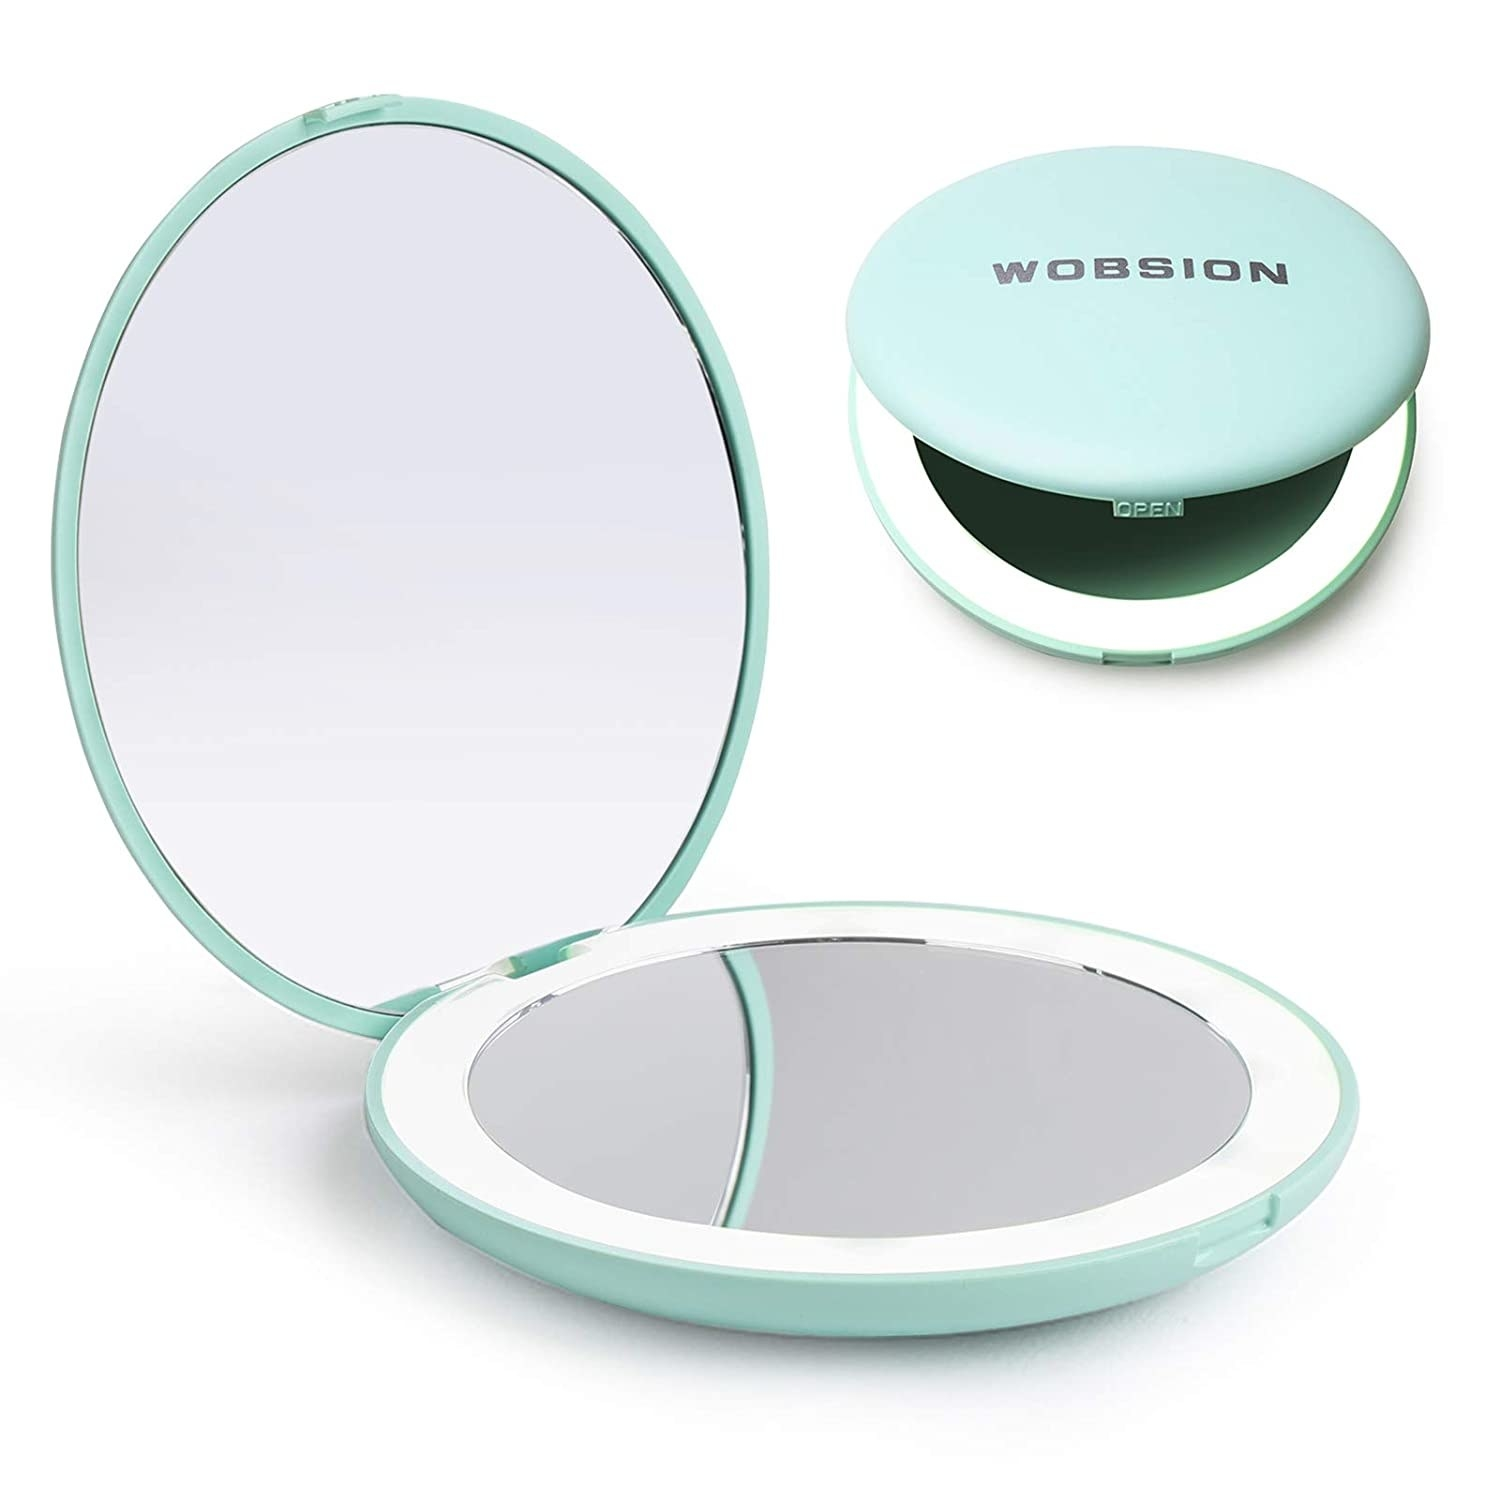 compact with two mirrors in it and a lighted ring around one of the mirrors